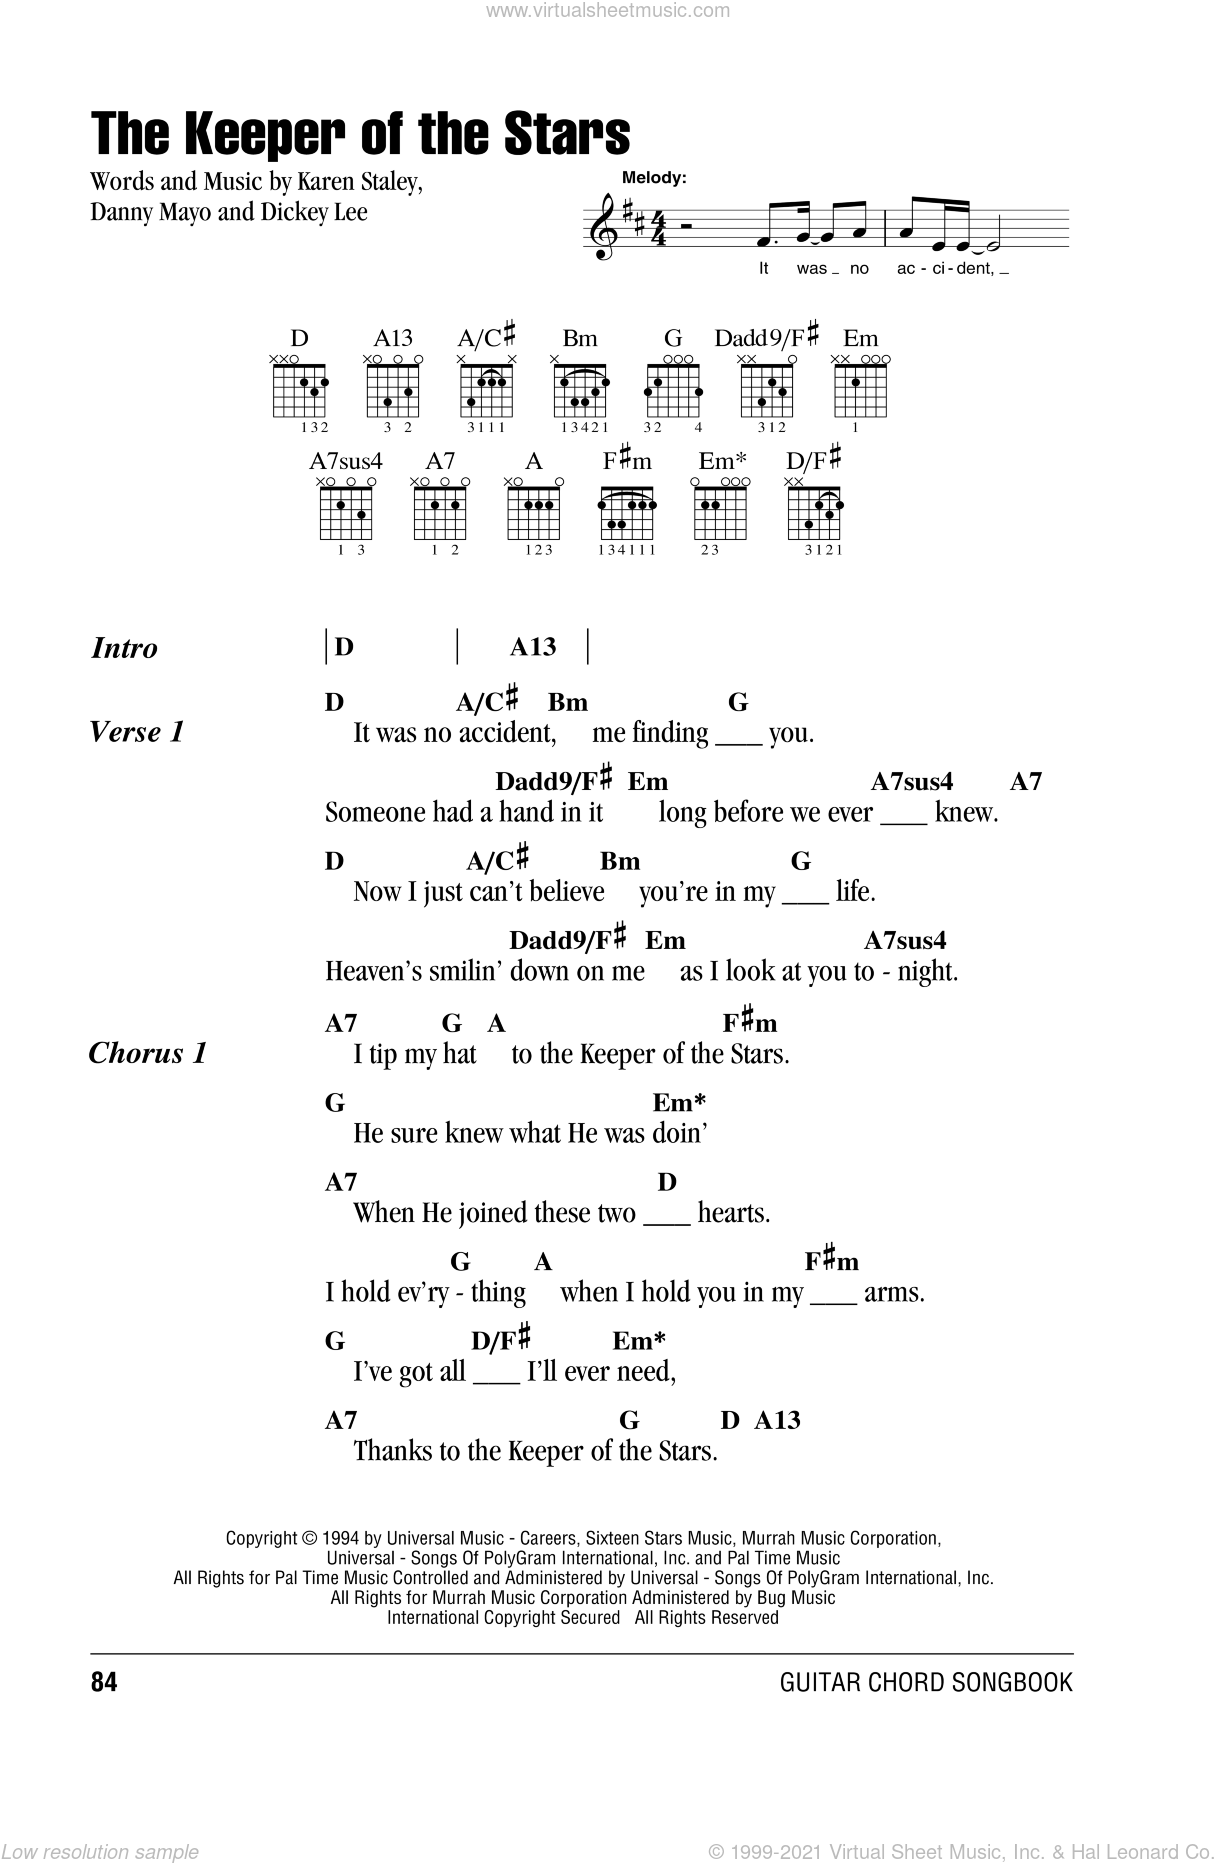 The Keeper Of The Stars sheet music for guitar (chords) by Tracy Byrd, Danny Mayo, Dickey Lee and Karen Staley, wedding score, intermediate skill level